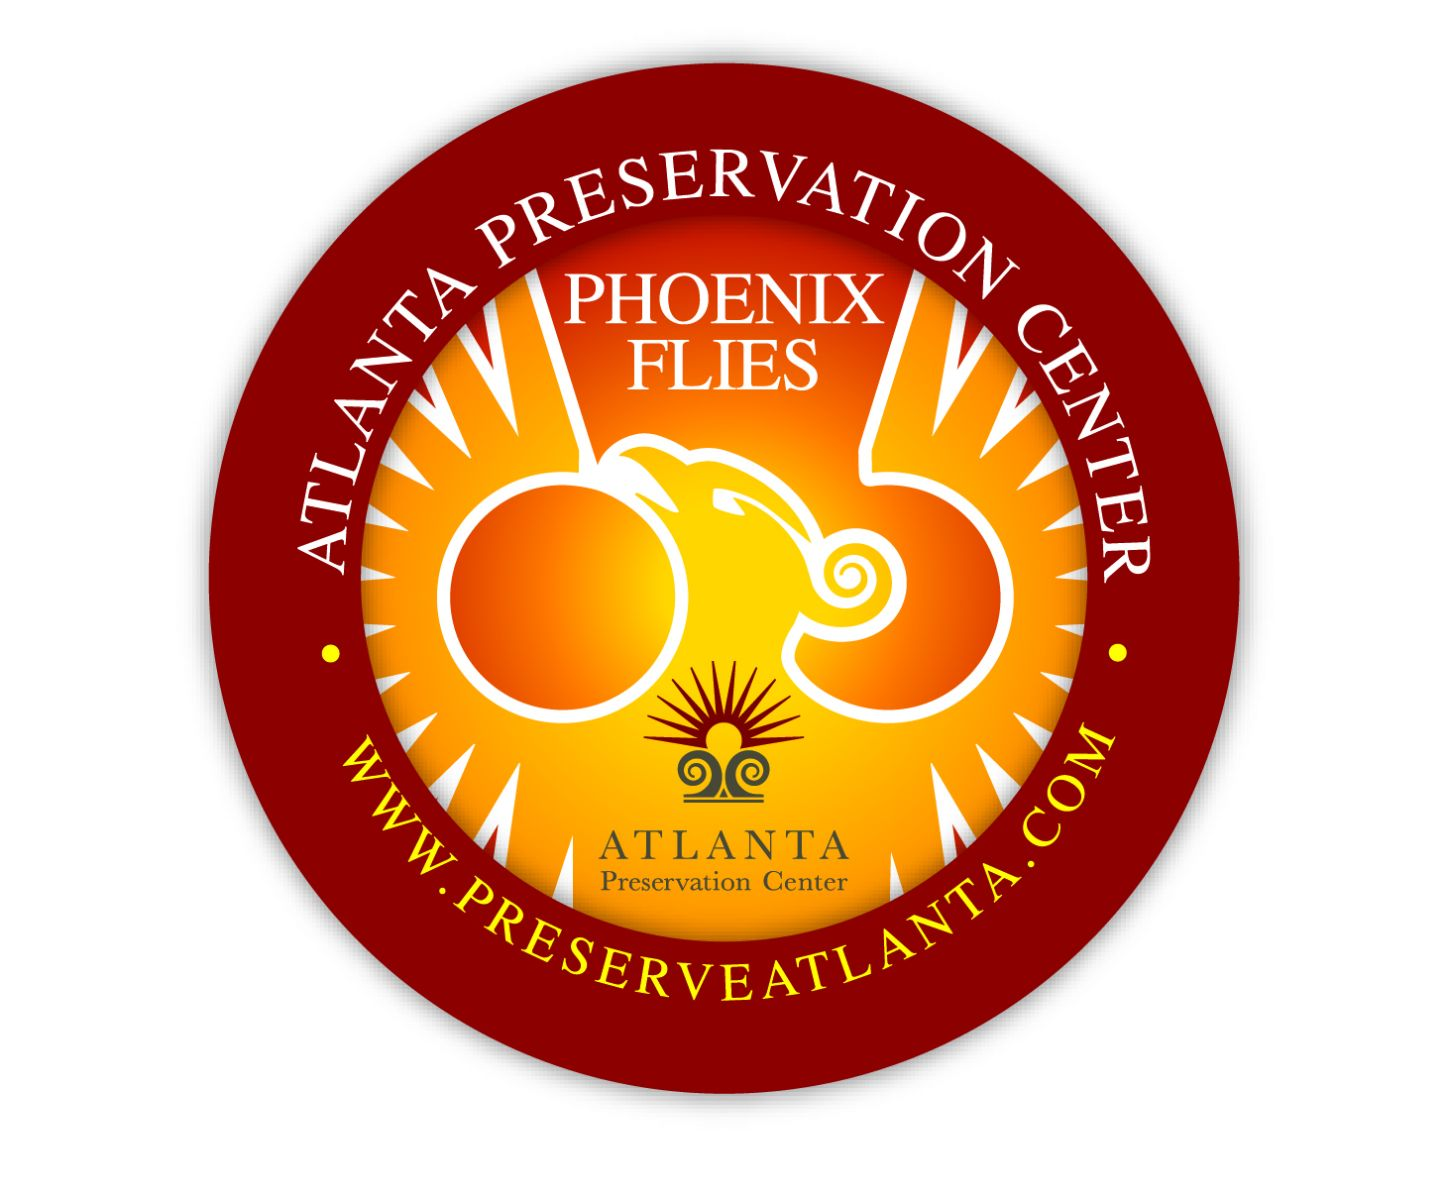 Atlanta preservation center the 2018 phoenix flies a celebration the 2018 phoenix flies a celebration of atlantas historic sites is returning for a 15th year buycottarizona Choice Image